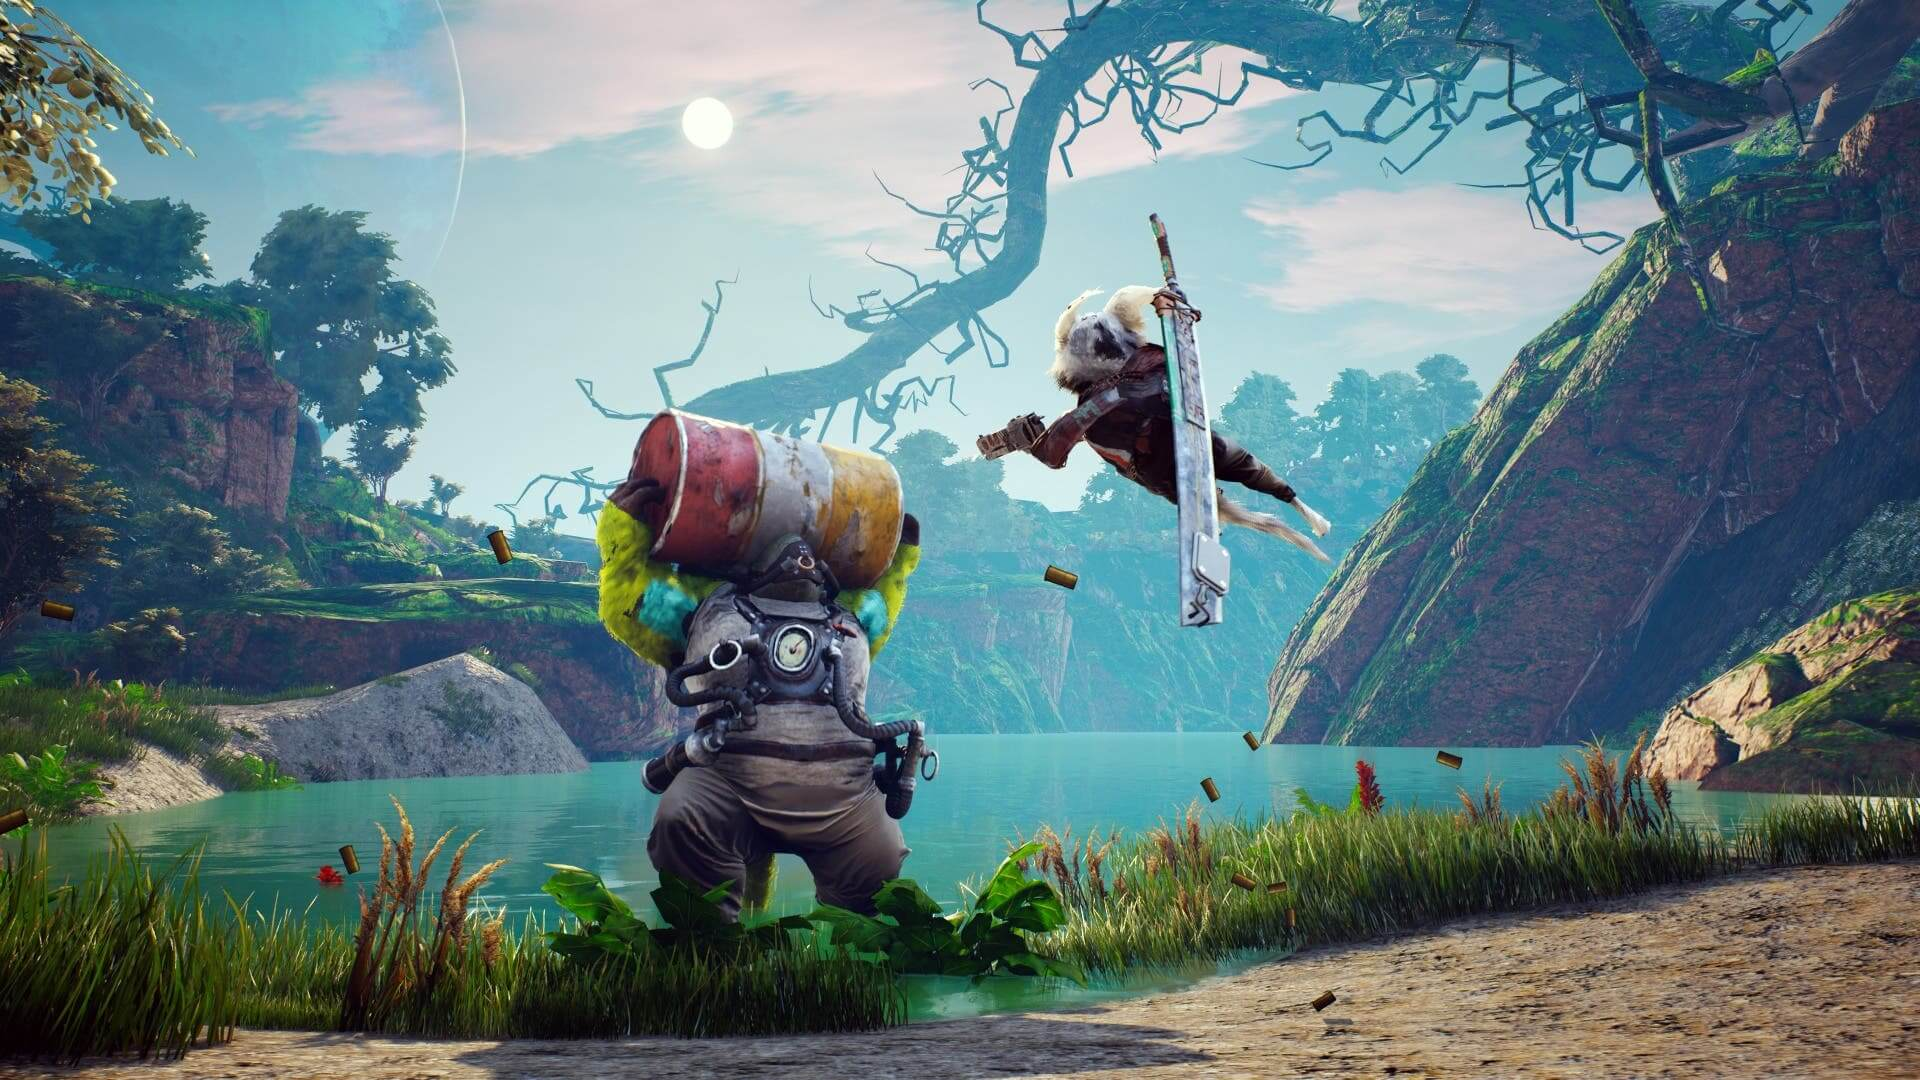 games coming to Xbox in May